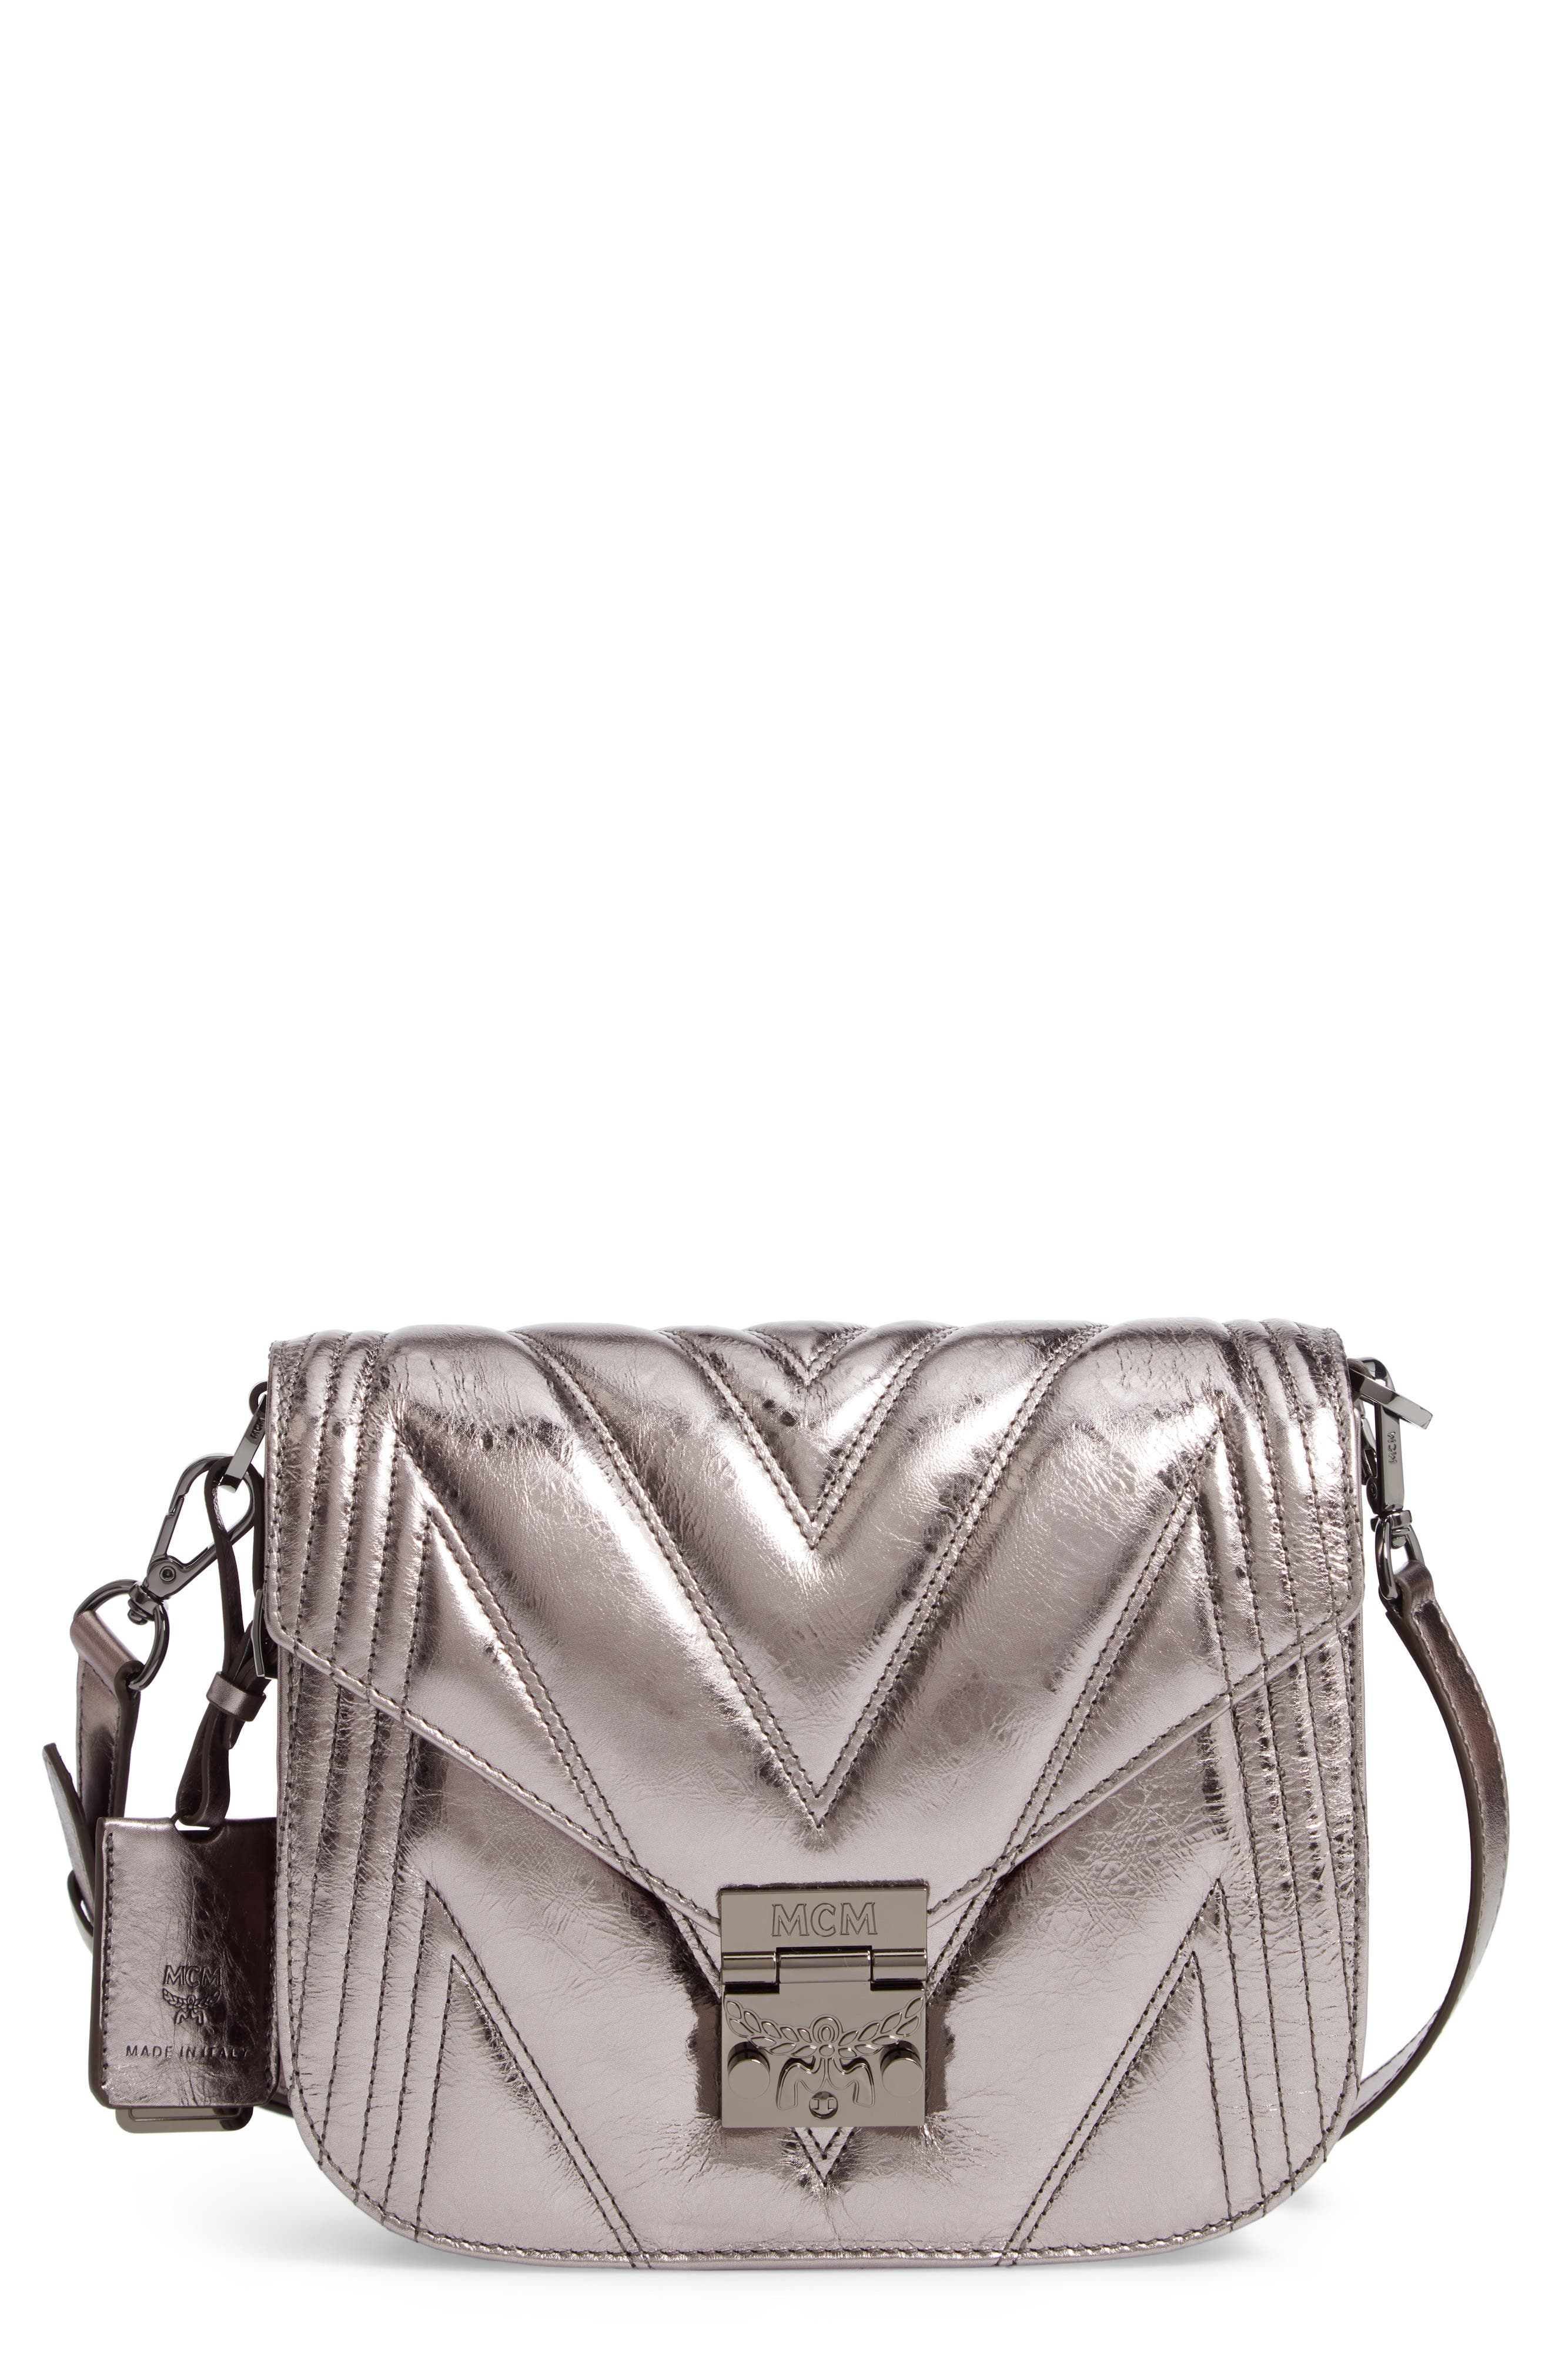 Patricia Quilted Metallic Leather Saddle Bag,                         Main,                         color, 040